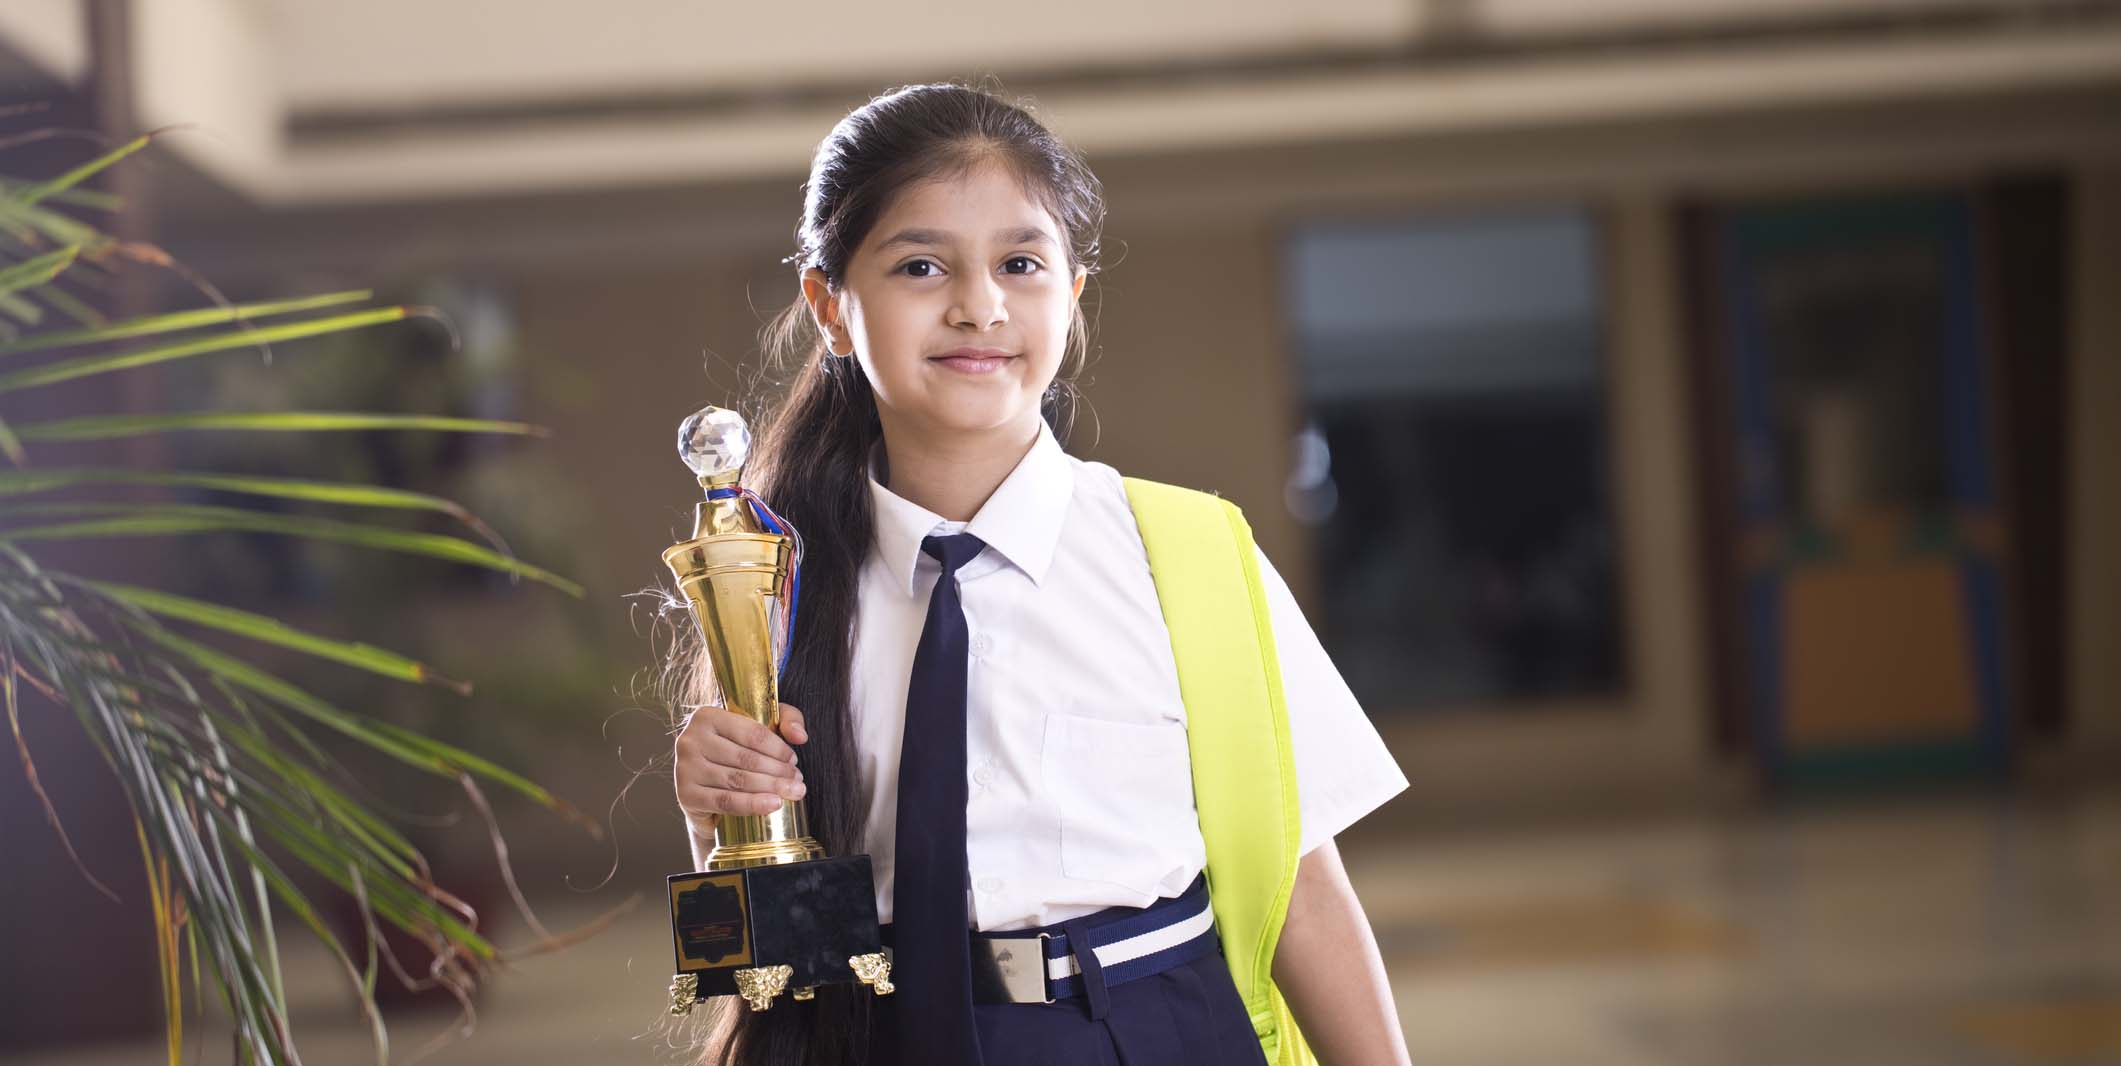 Young Girl in a school uniform holding an award